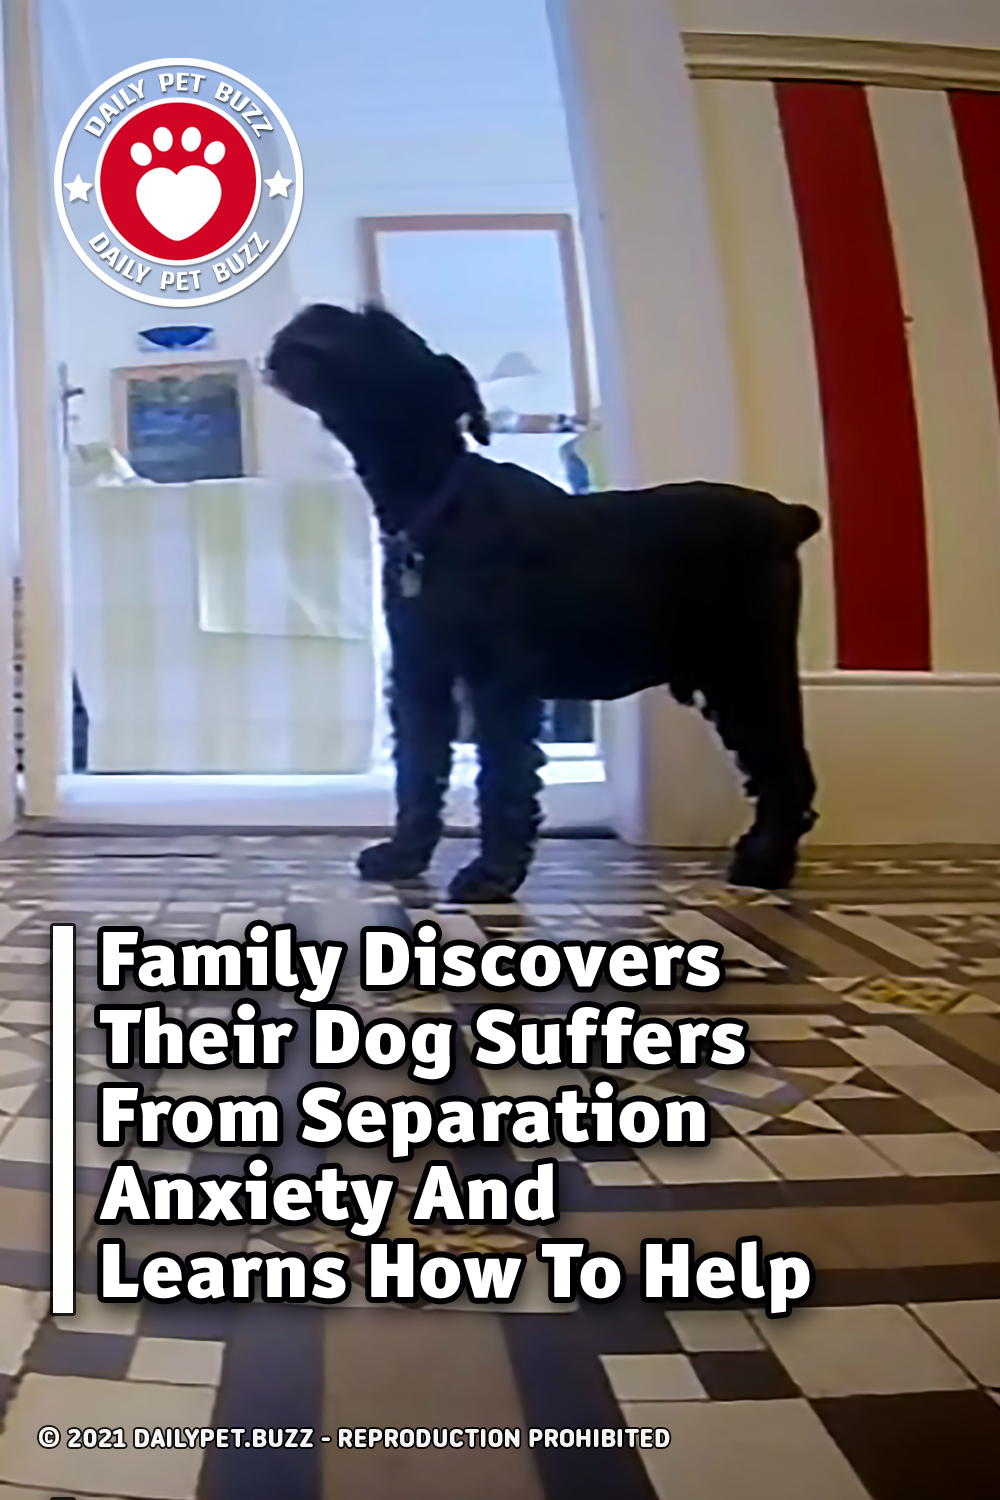 Family Discovers Their Dog Suffers From Separation Anxiety And Learns How To Help